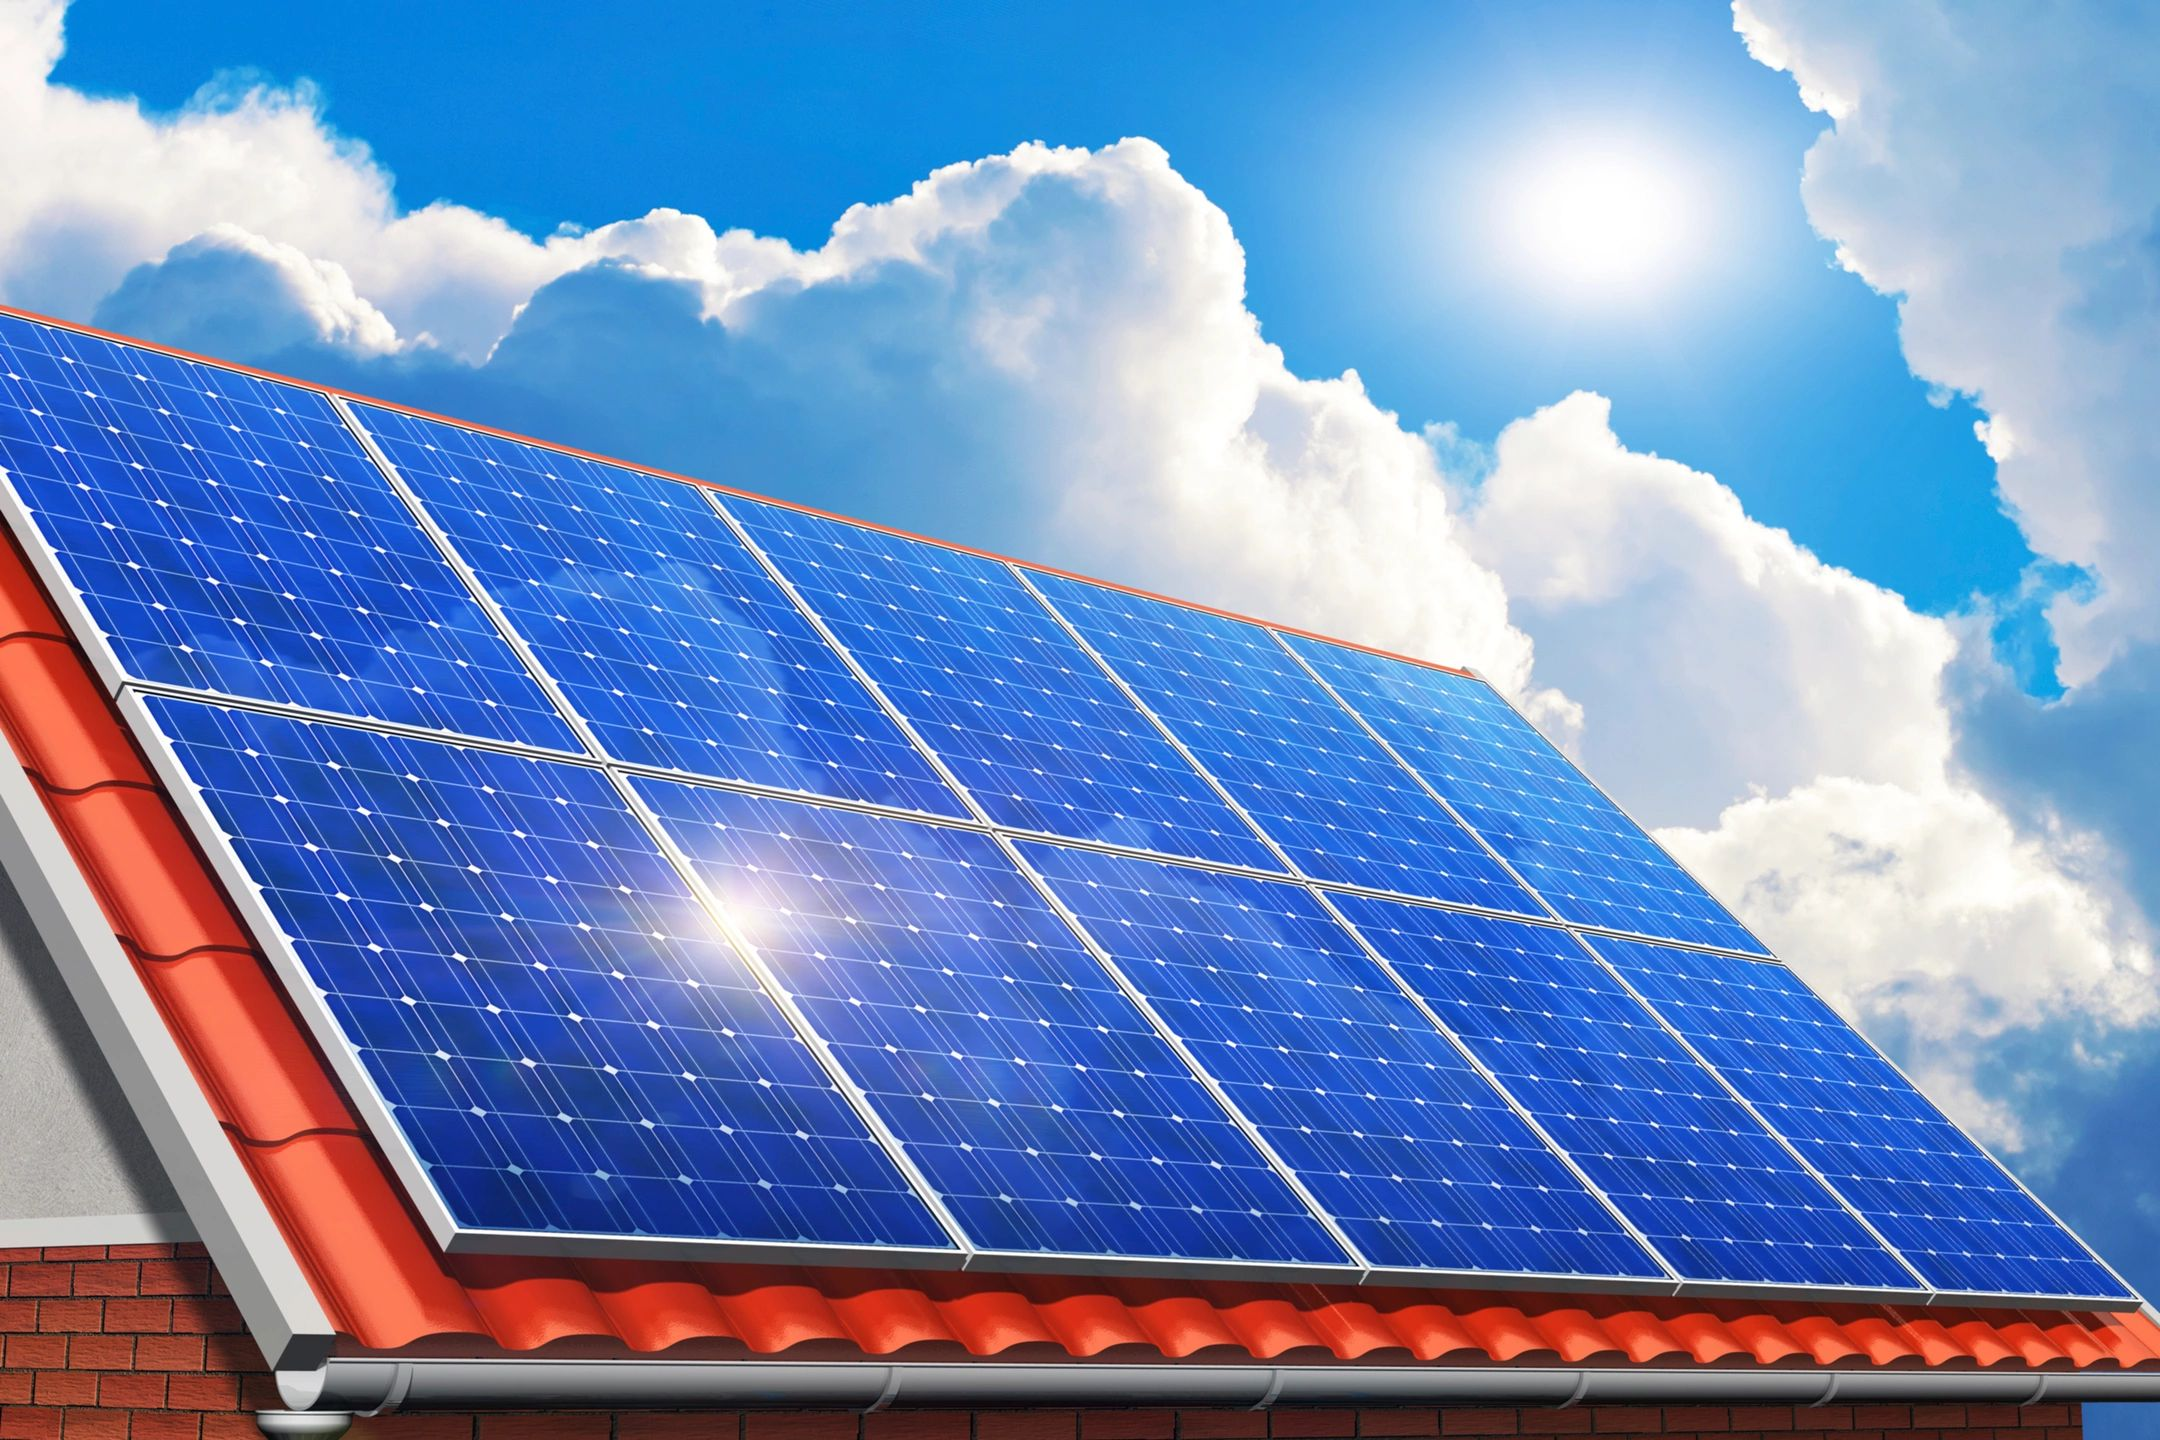 COMMENTARY: Solar industry must clean up its act